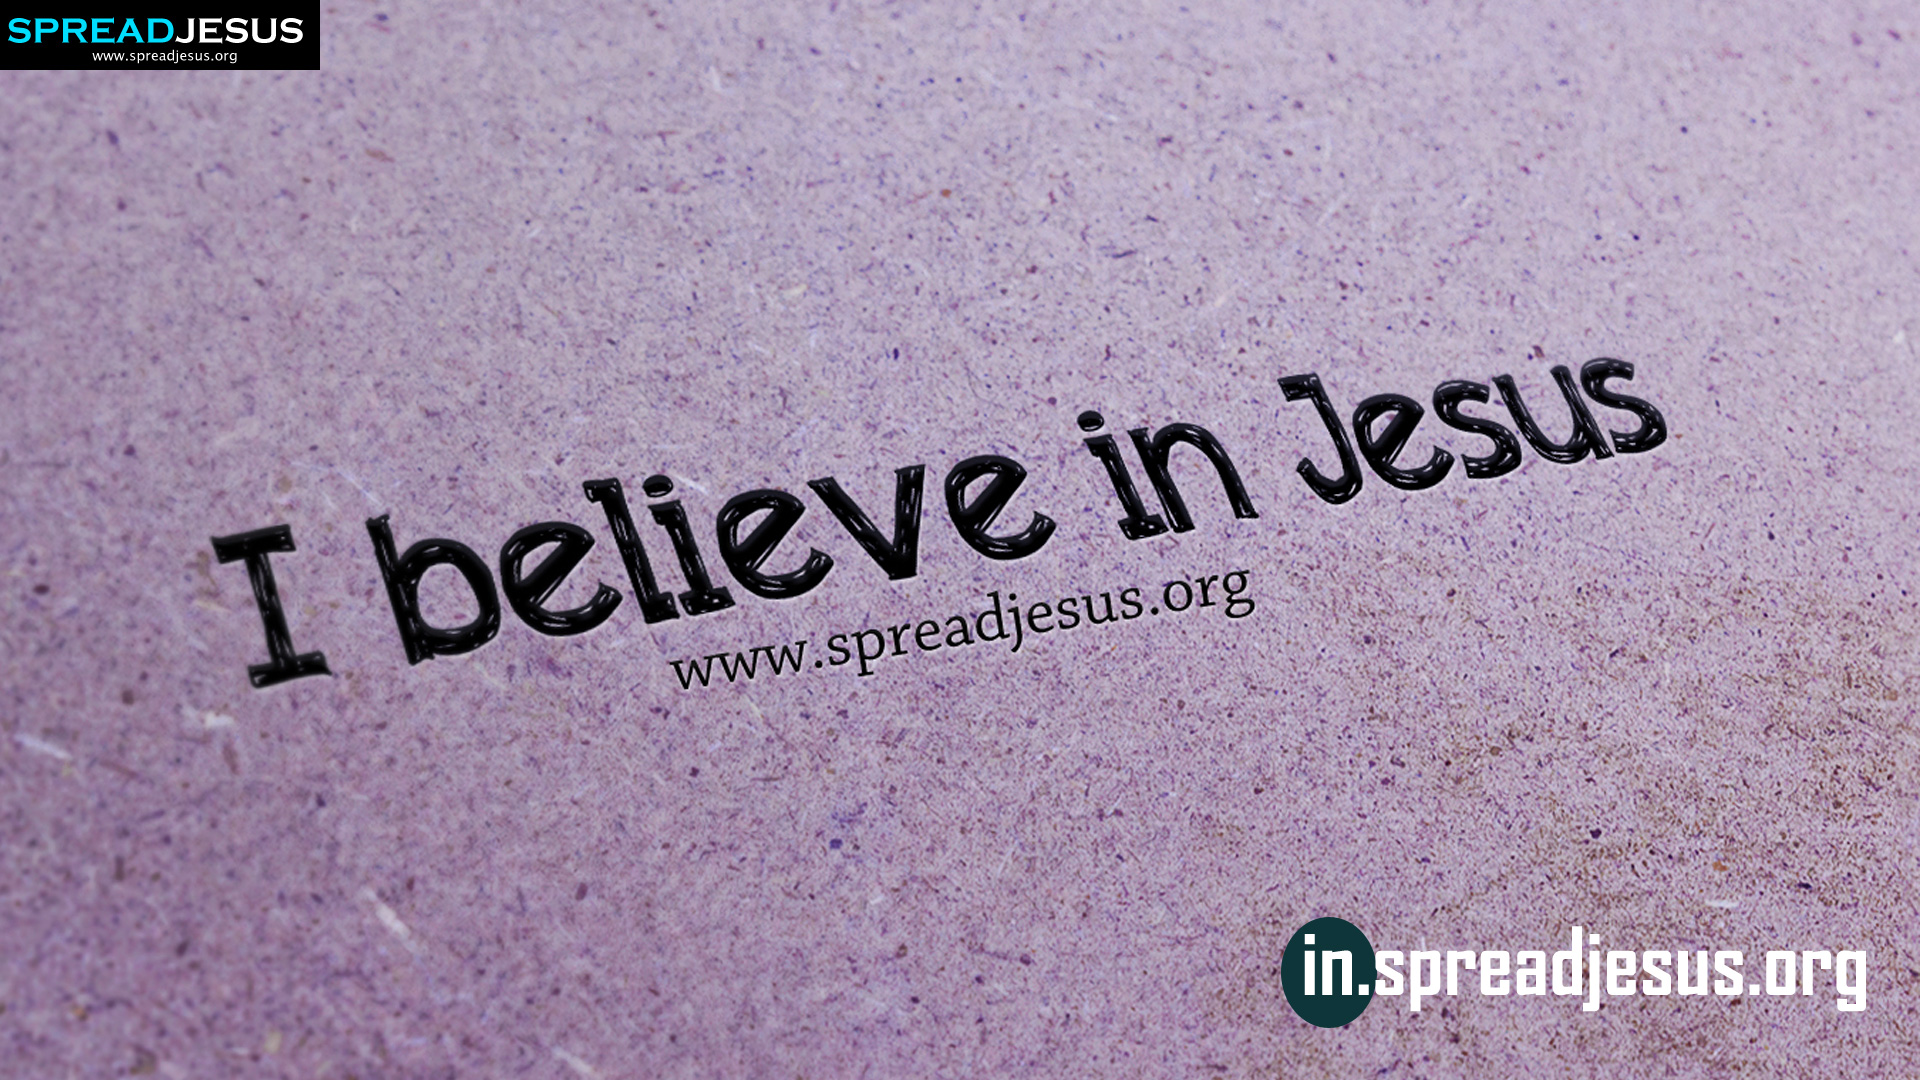 One Piece Quote Wallpaper Download Jesus Words In English Wallpaper Gallery